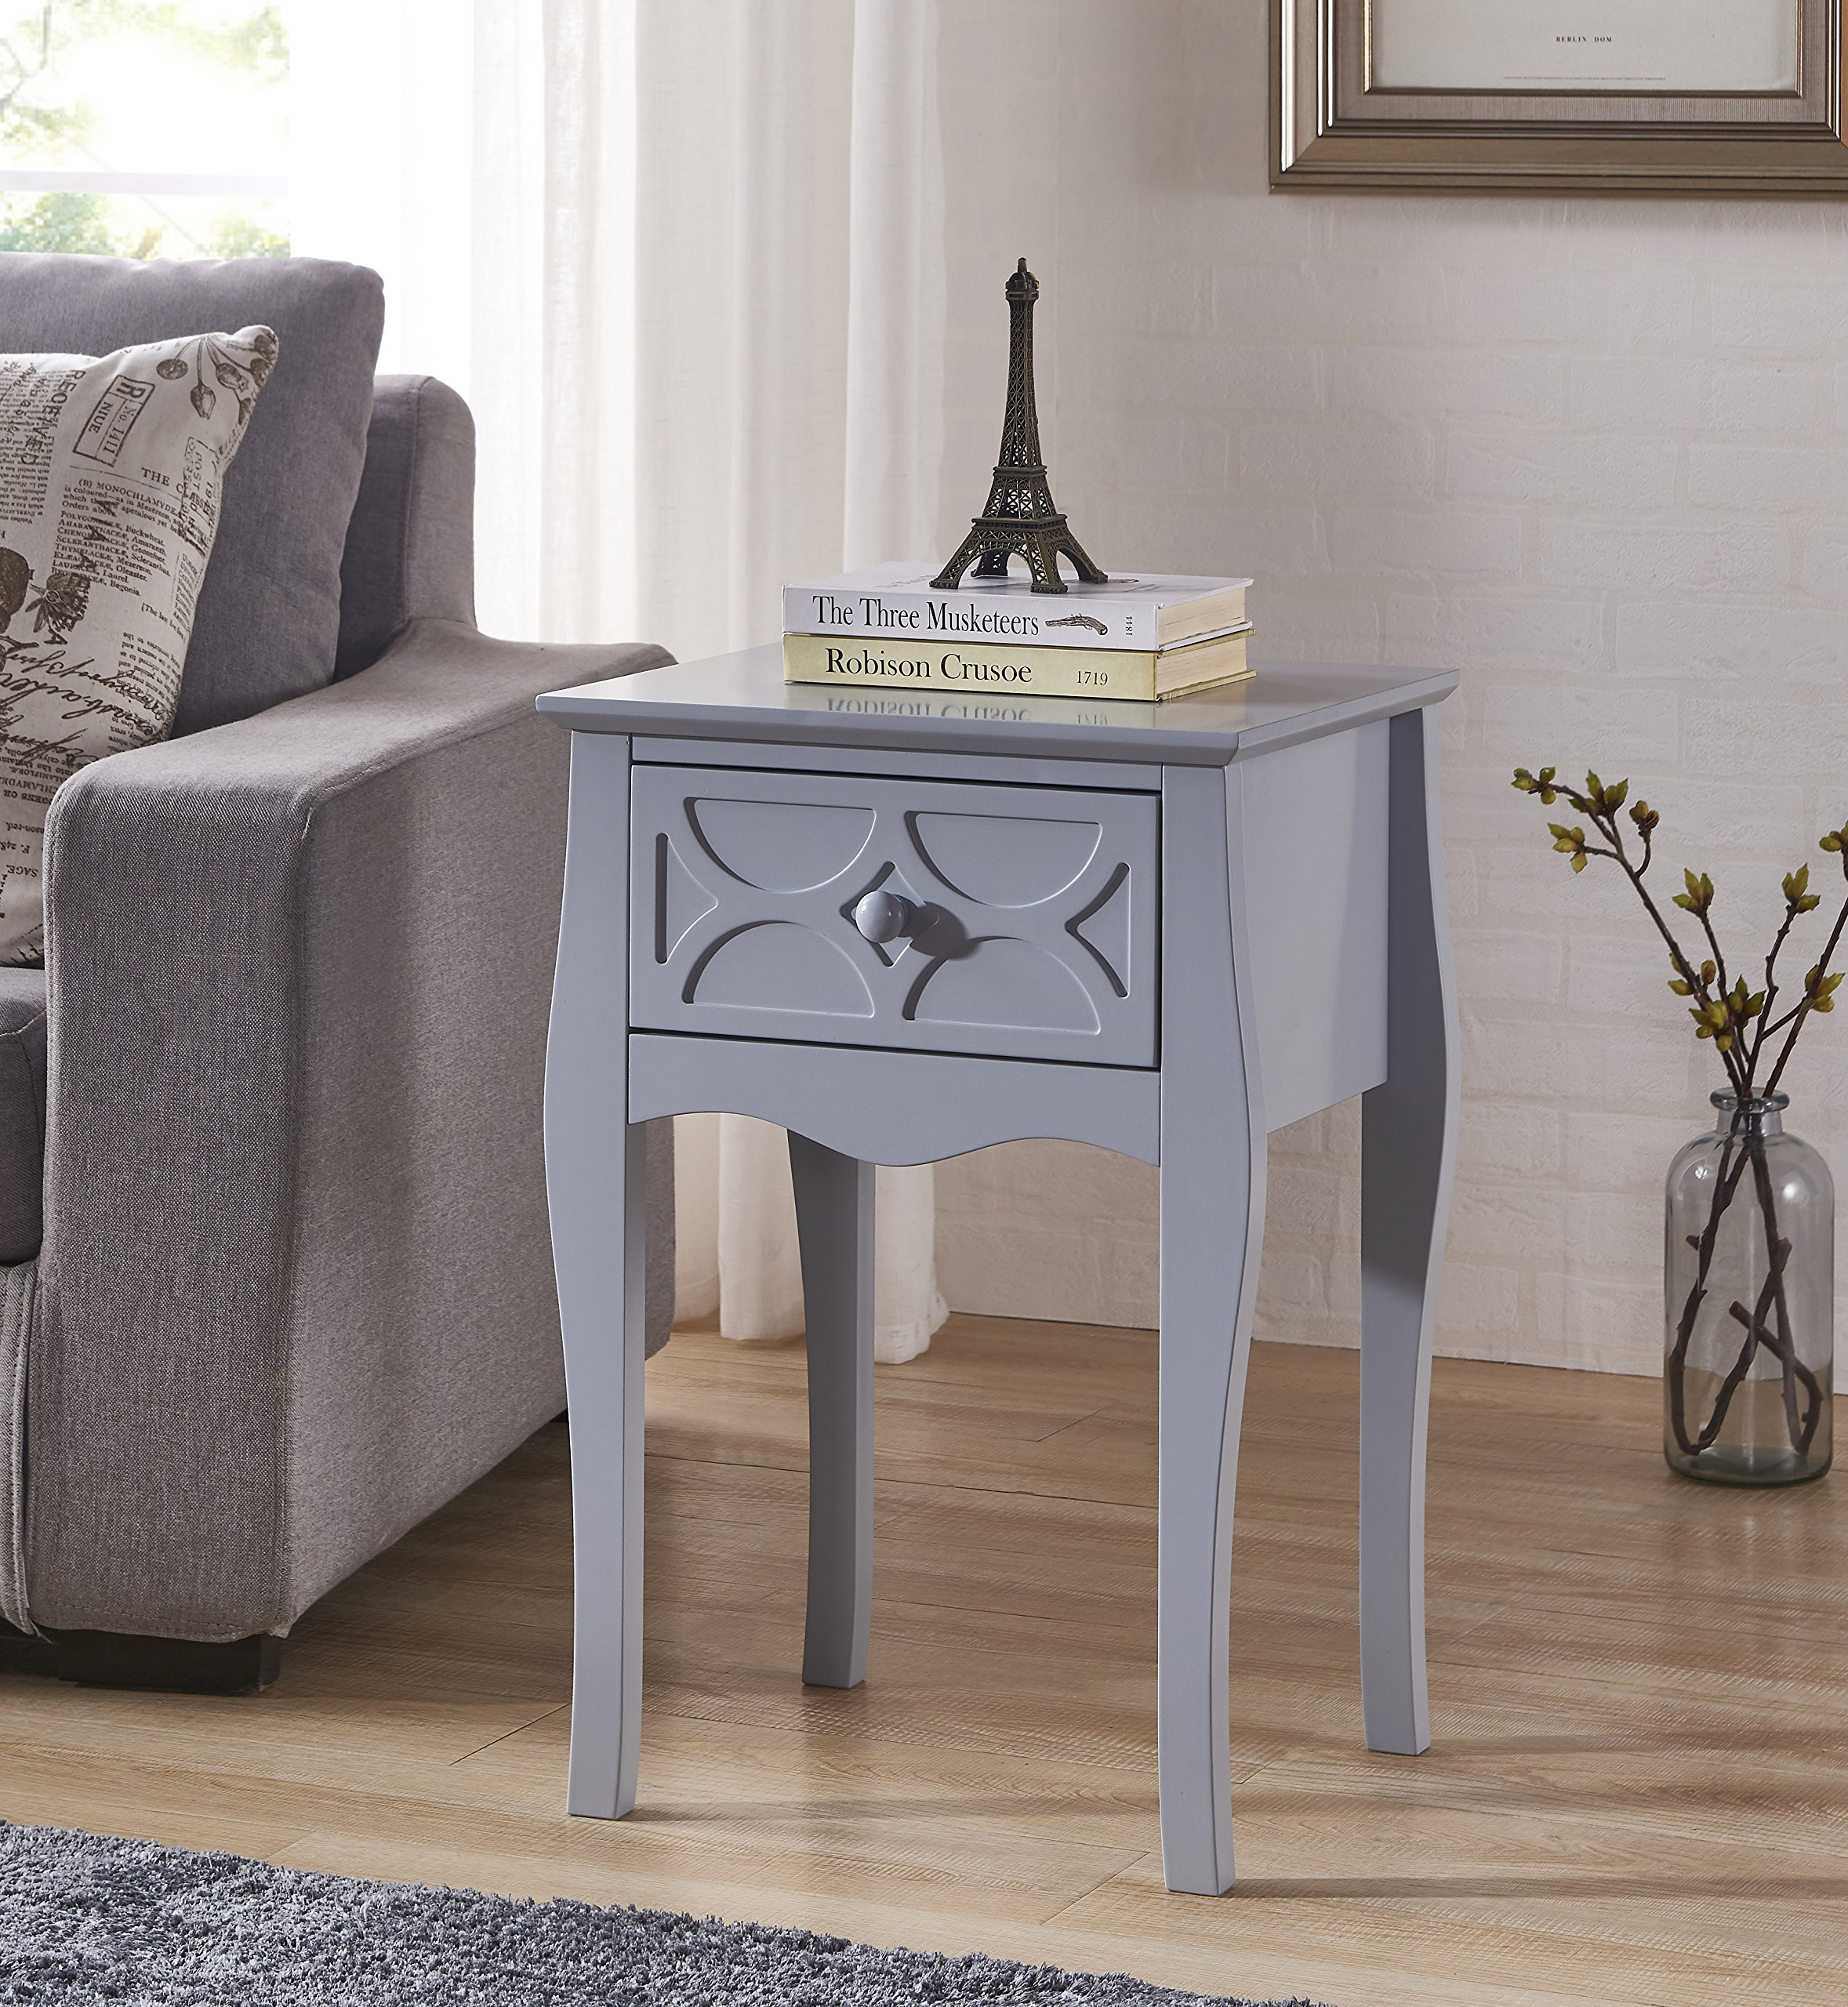 Grey Finish Checker Front Design Nightstand Side End Table with Drawer - Color: Grey Material: MDF/Hardwood Features one drawer for storage with checker pattern design on the front - living-room-furniture, living-room, end-tables - A1GKG0YvQTL -